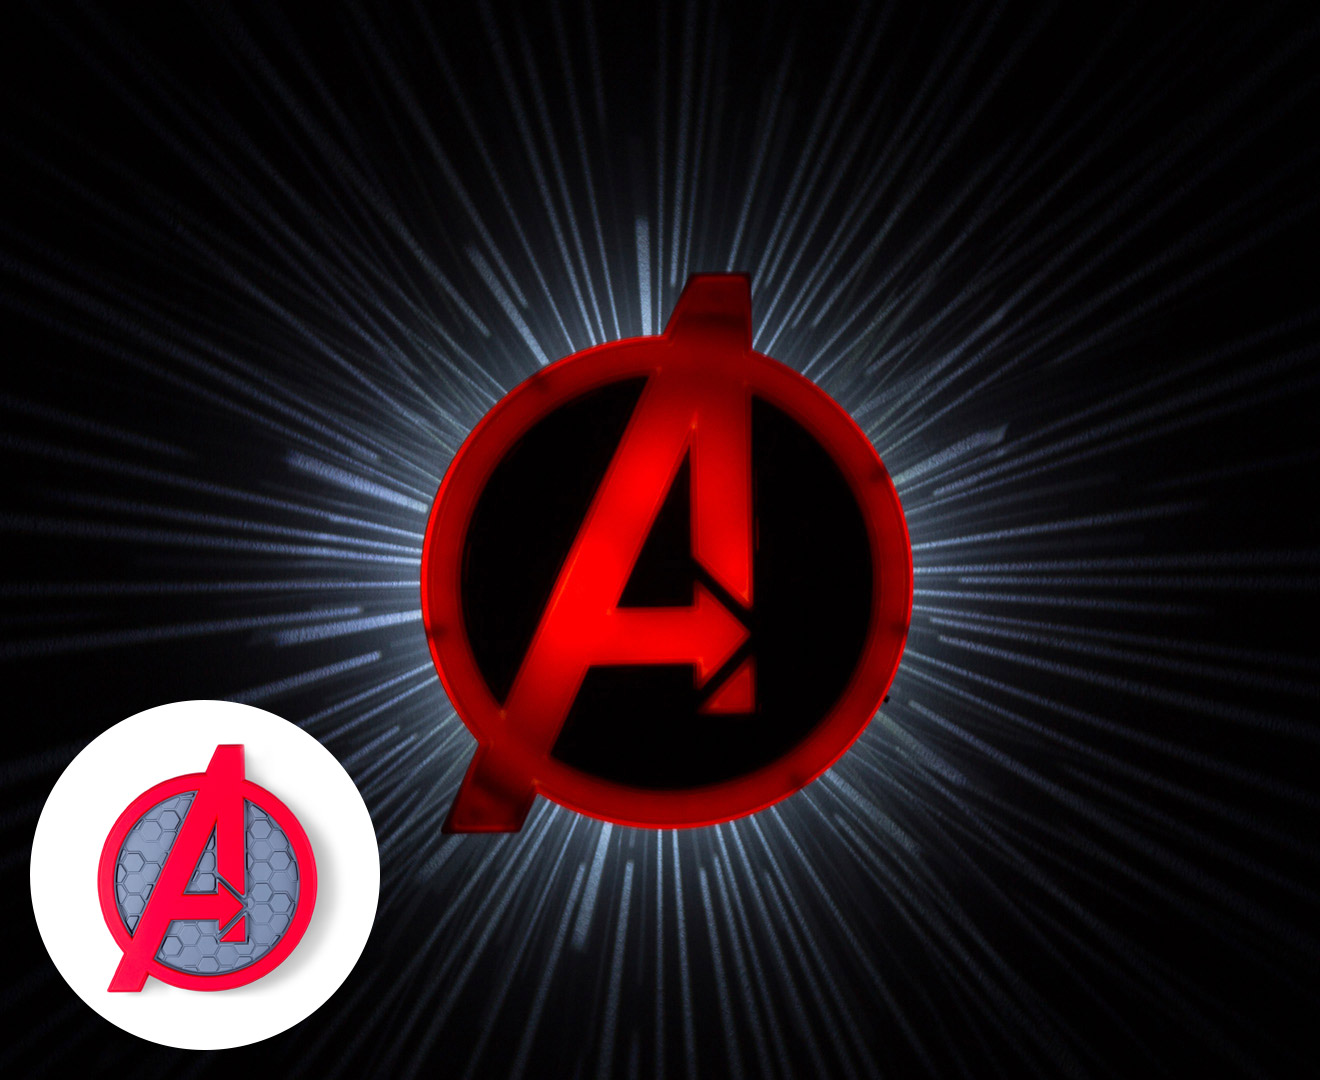 Avengers Wall Lights Very : 3D Marvel Avengers Shield Wall Light - Red eBay